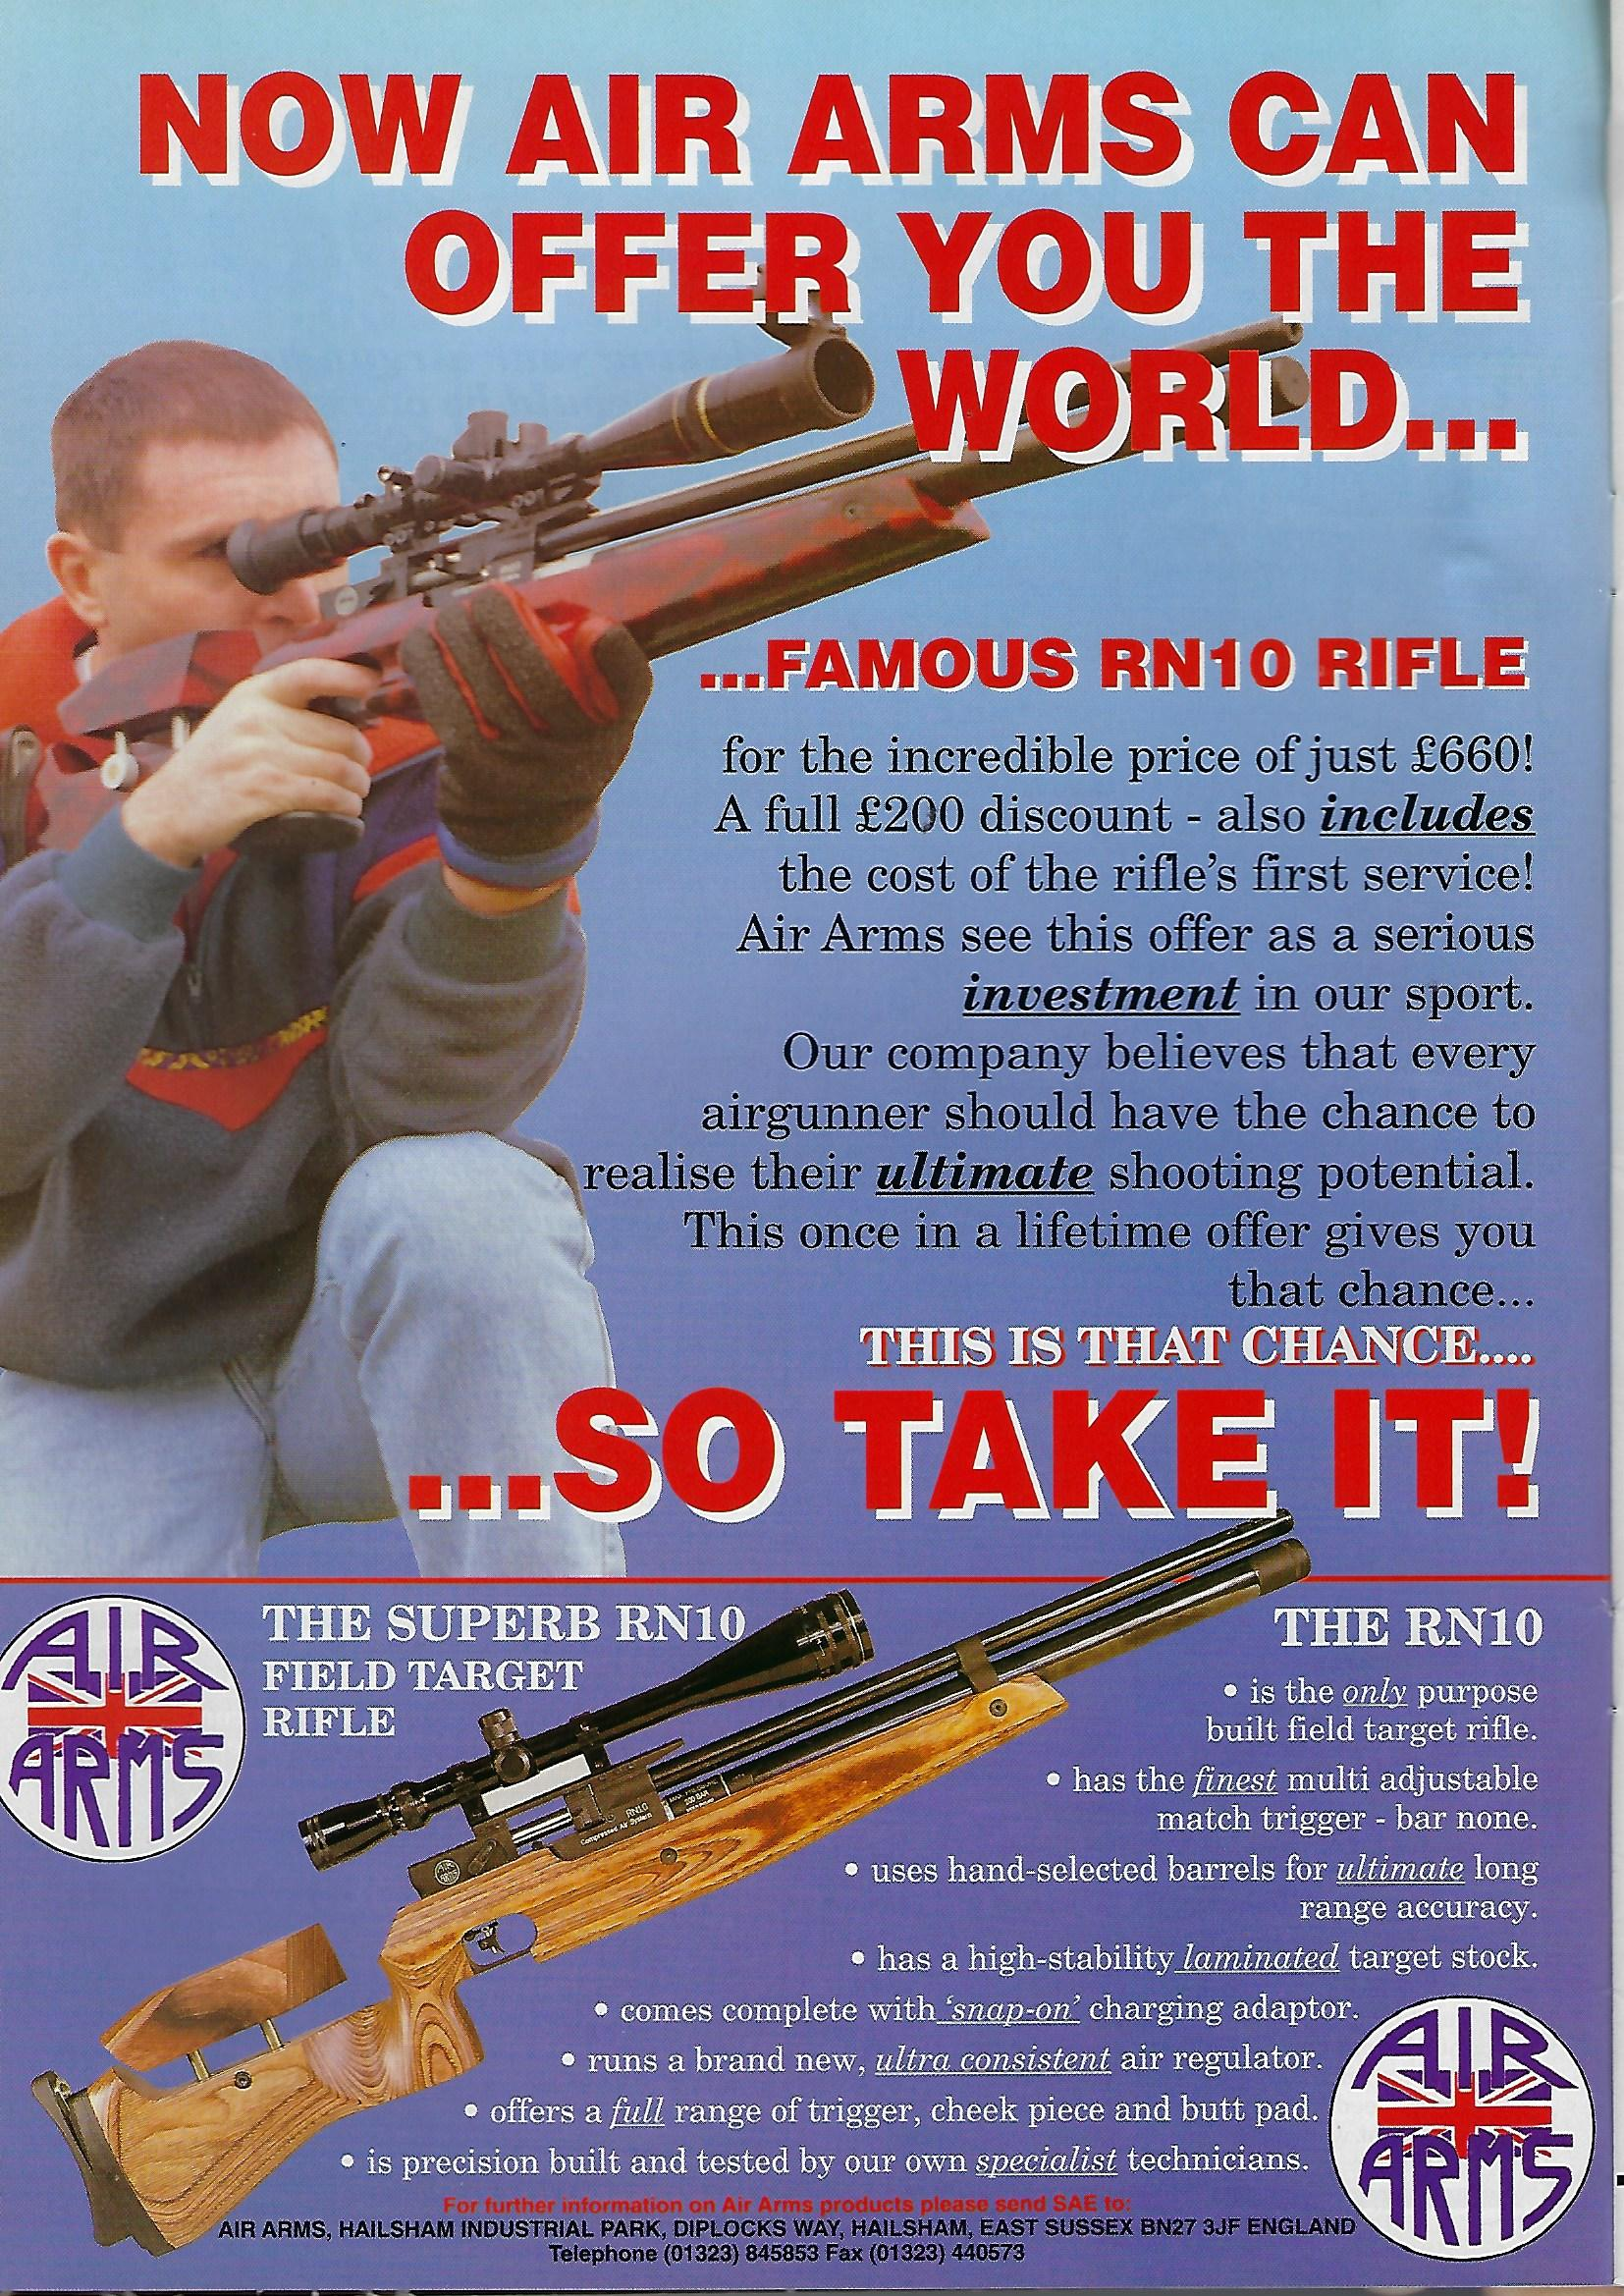 AGW - MAY 1997 - RN10 PRICE CUT AD.jpg